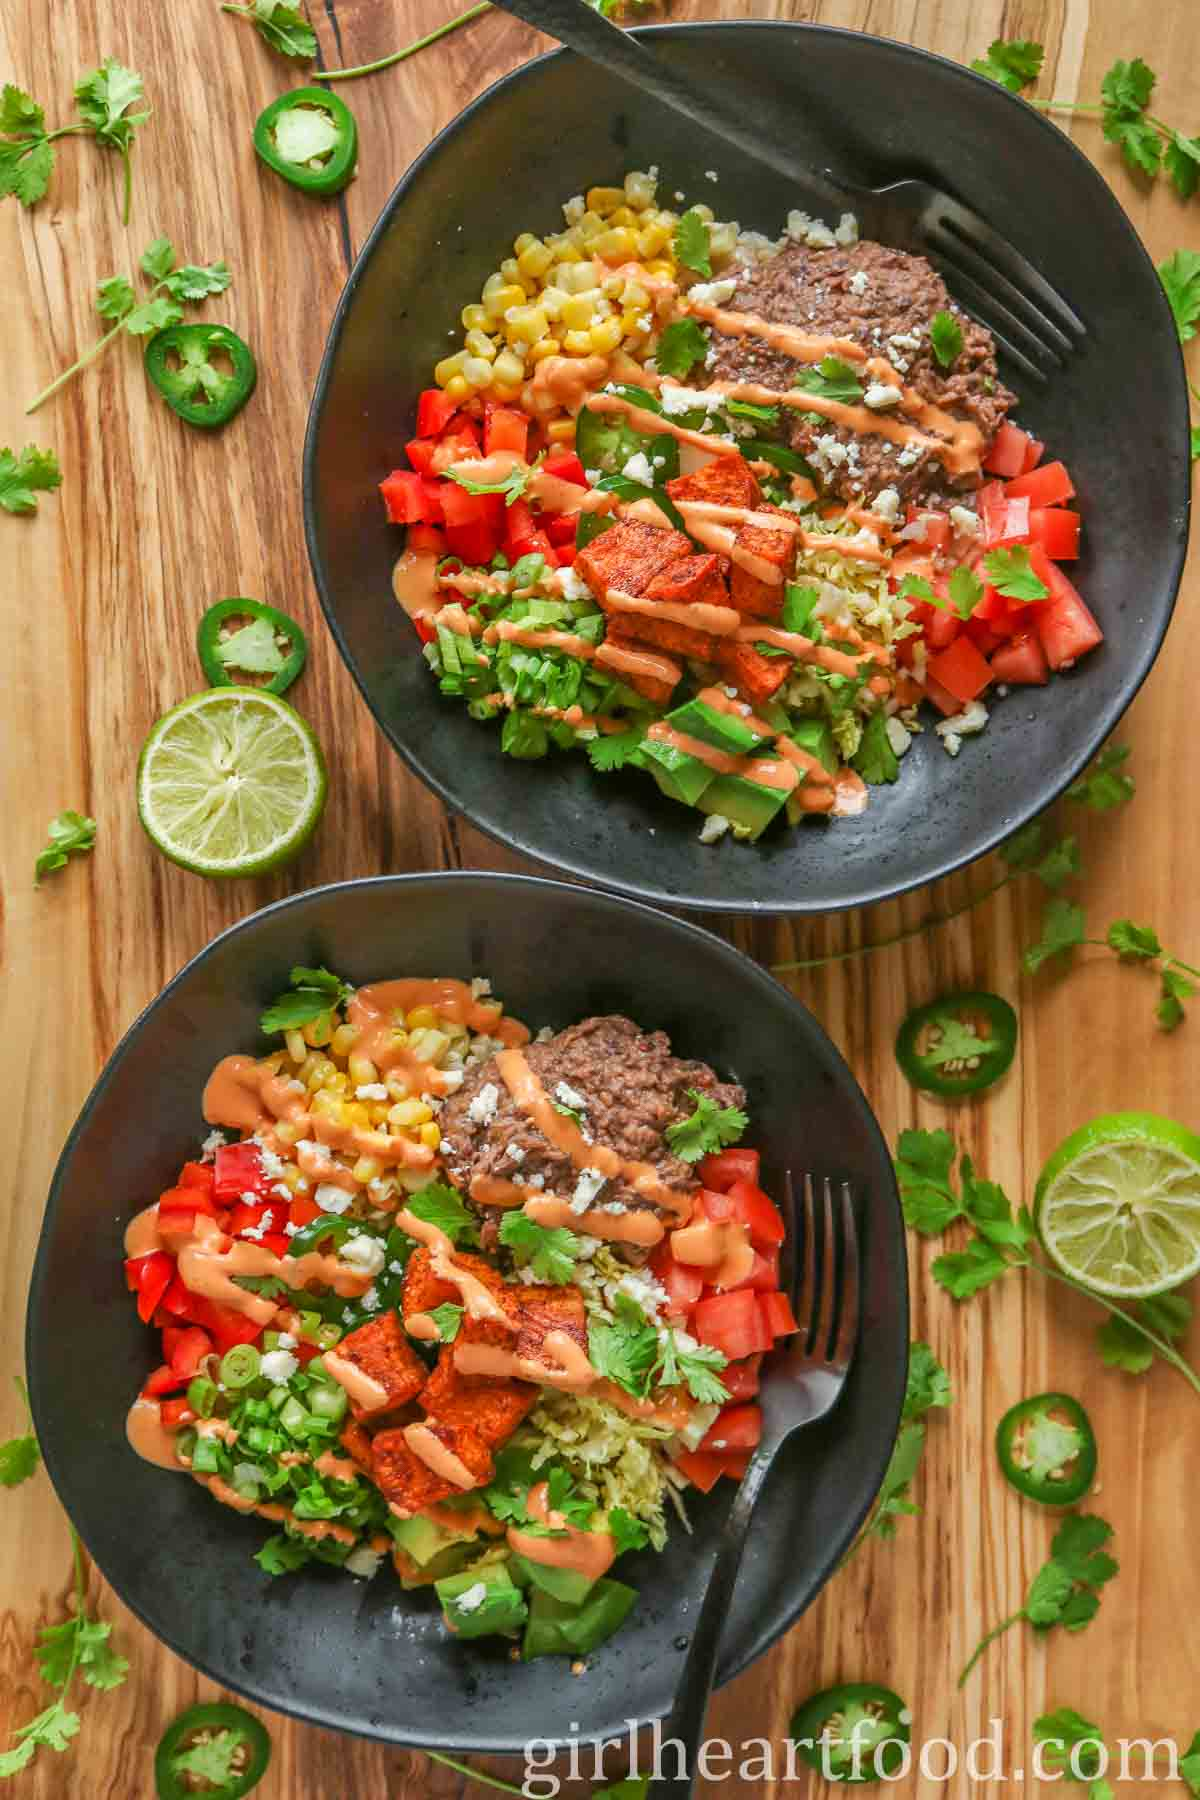 Two refried bean and veggie burrito bowls drizzled with chipotle sauce.